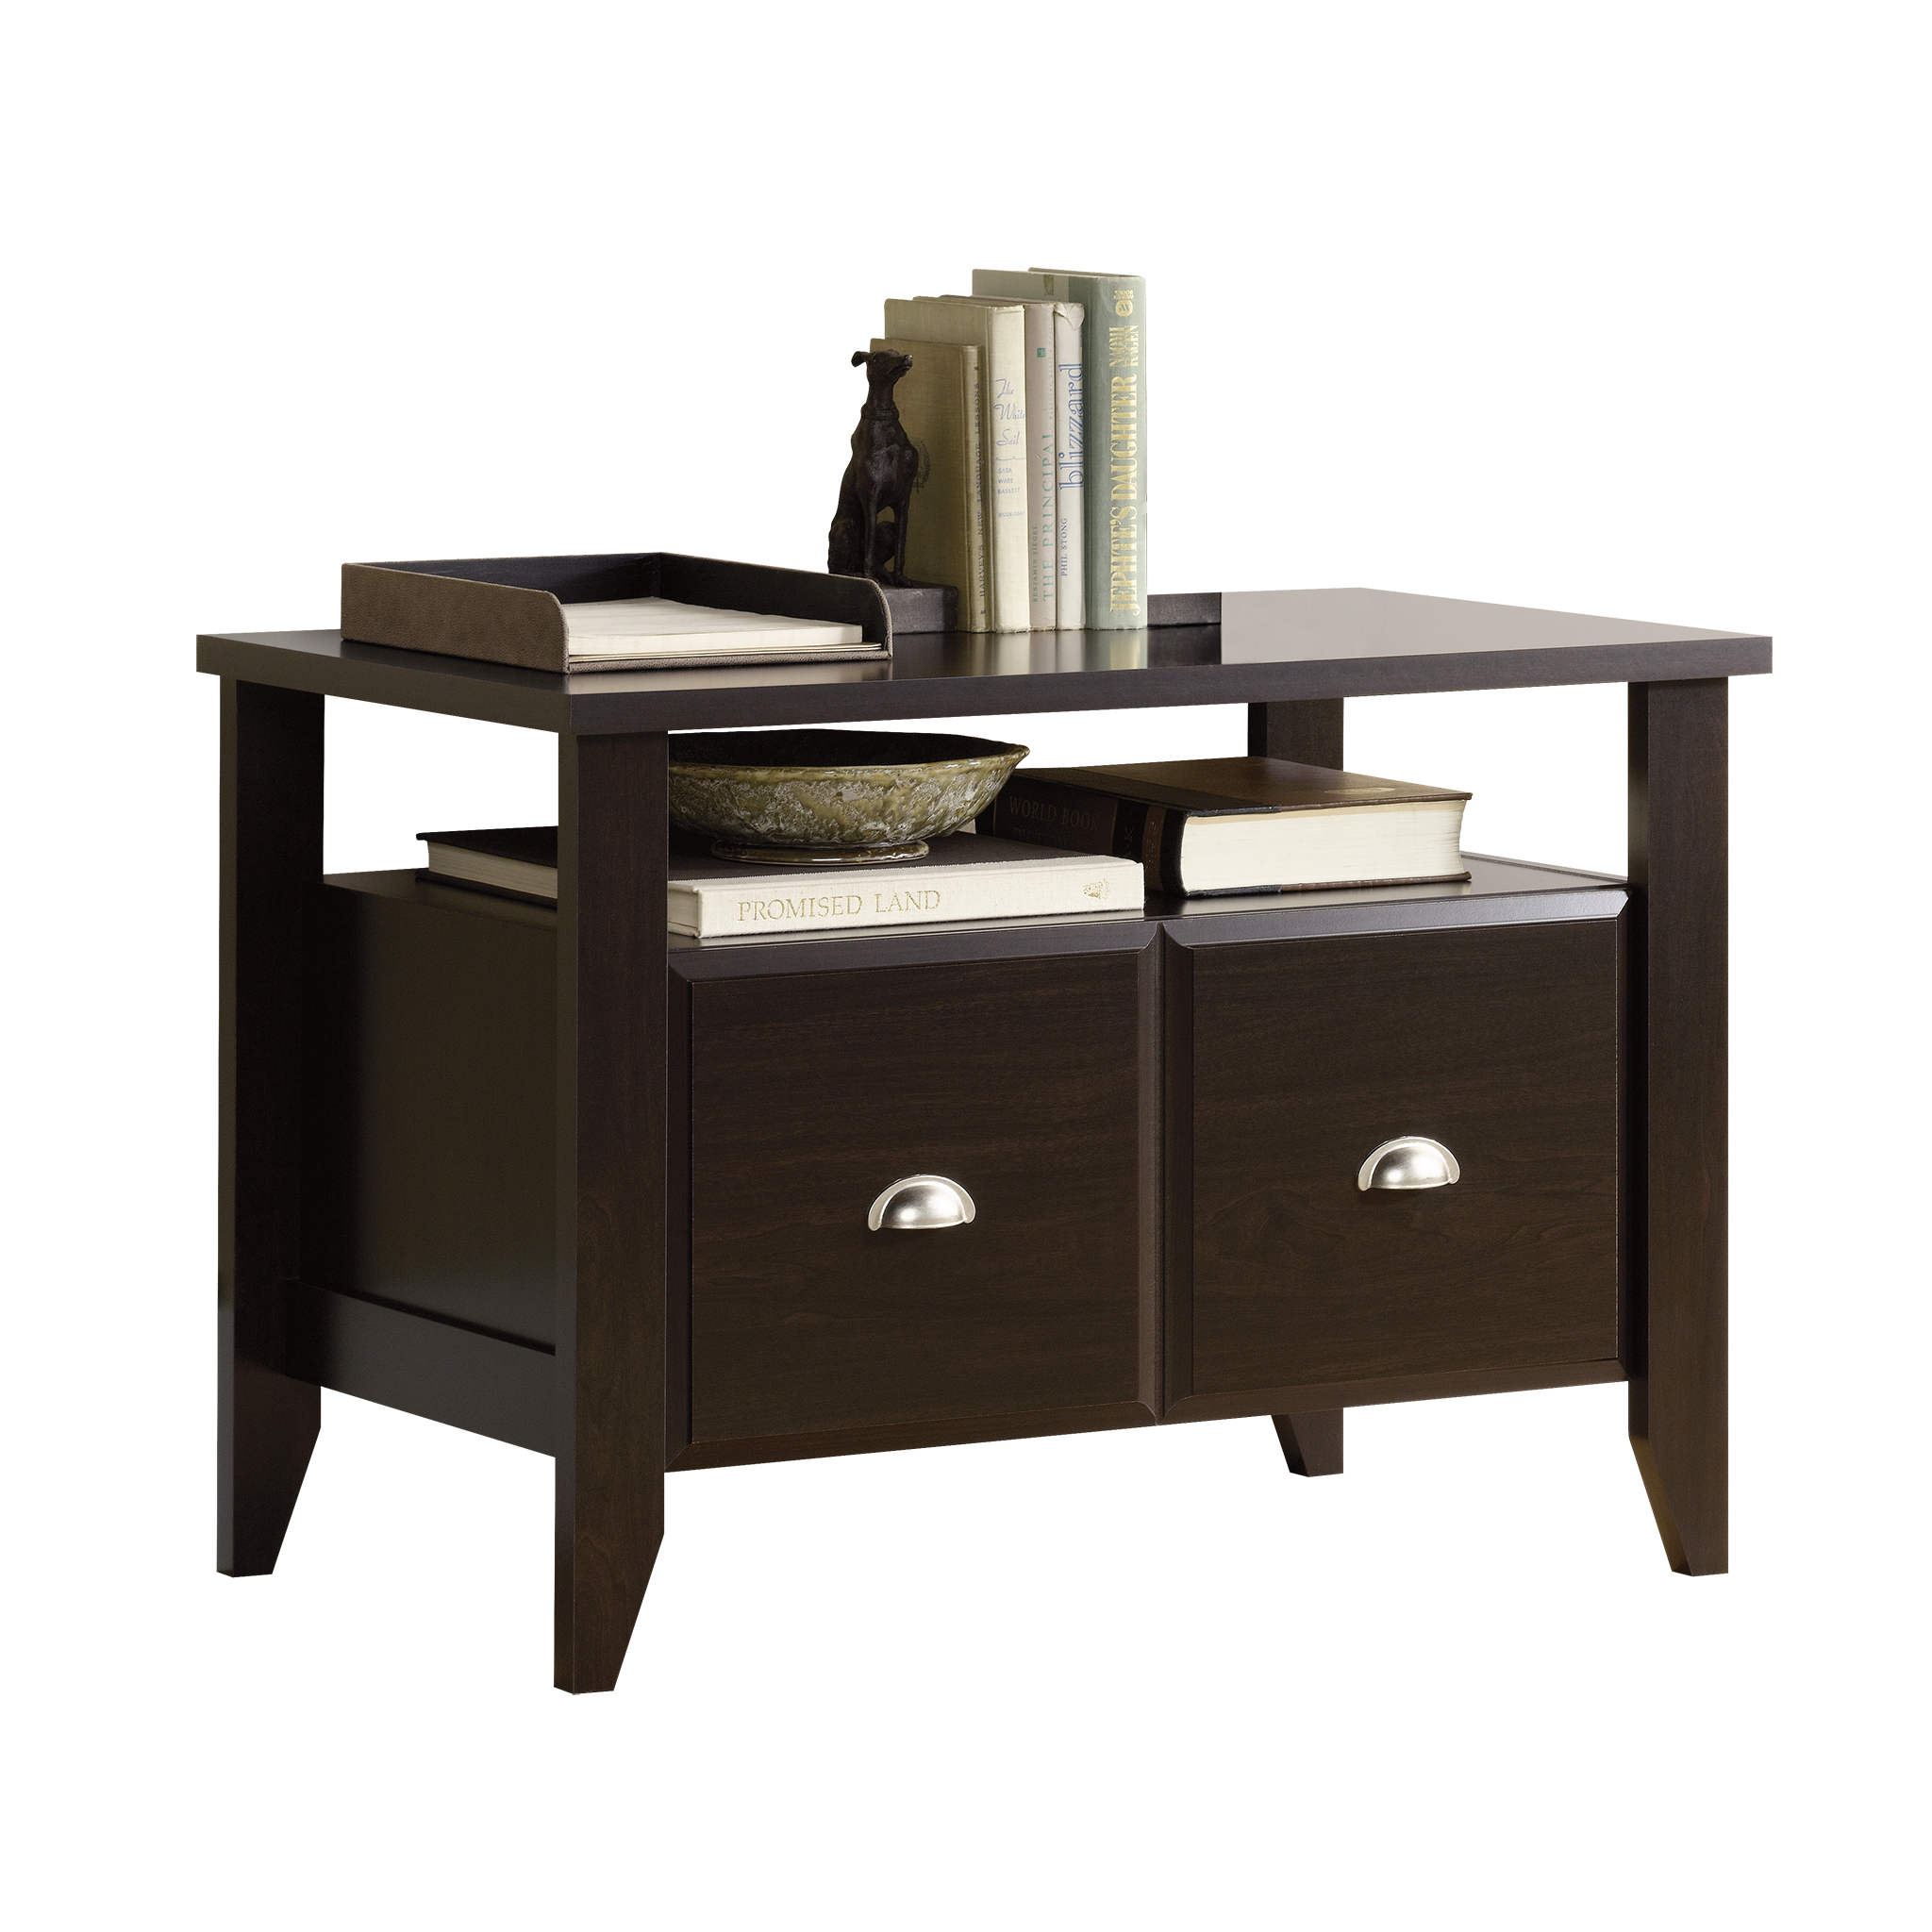 Sauder Shoal Creek 1 Drawer Utility Stand, Jamocha Wood Finish